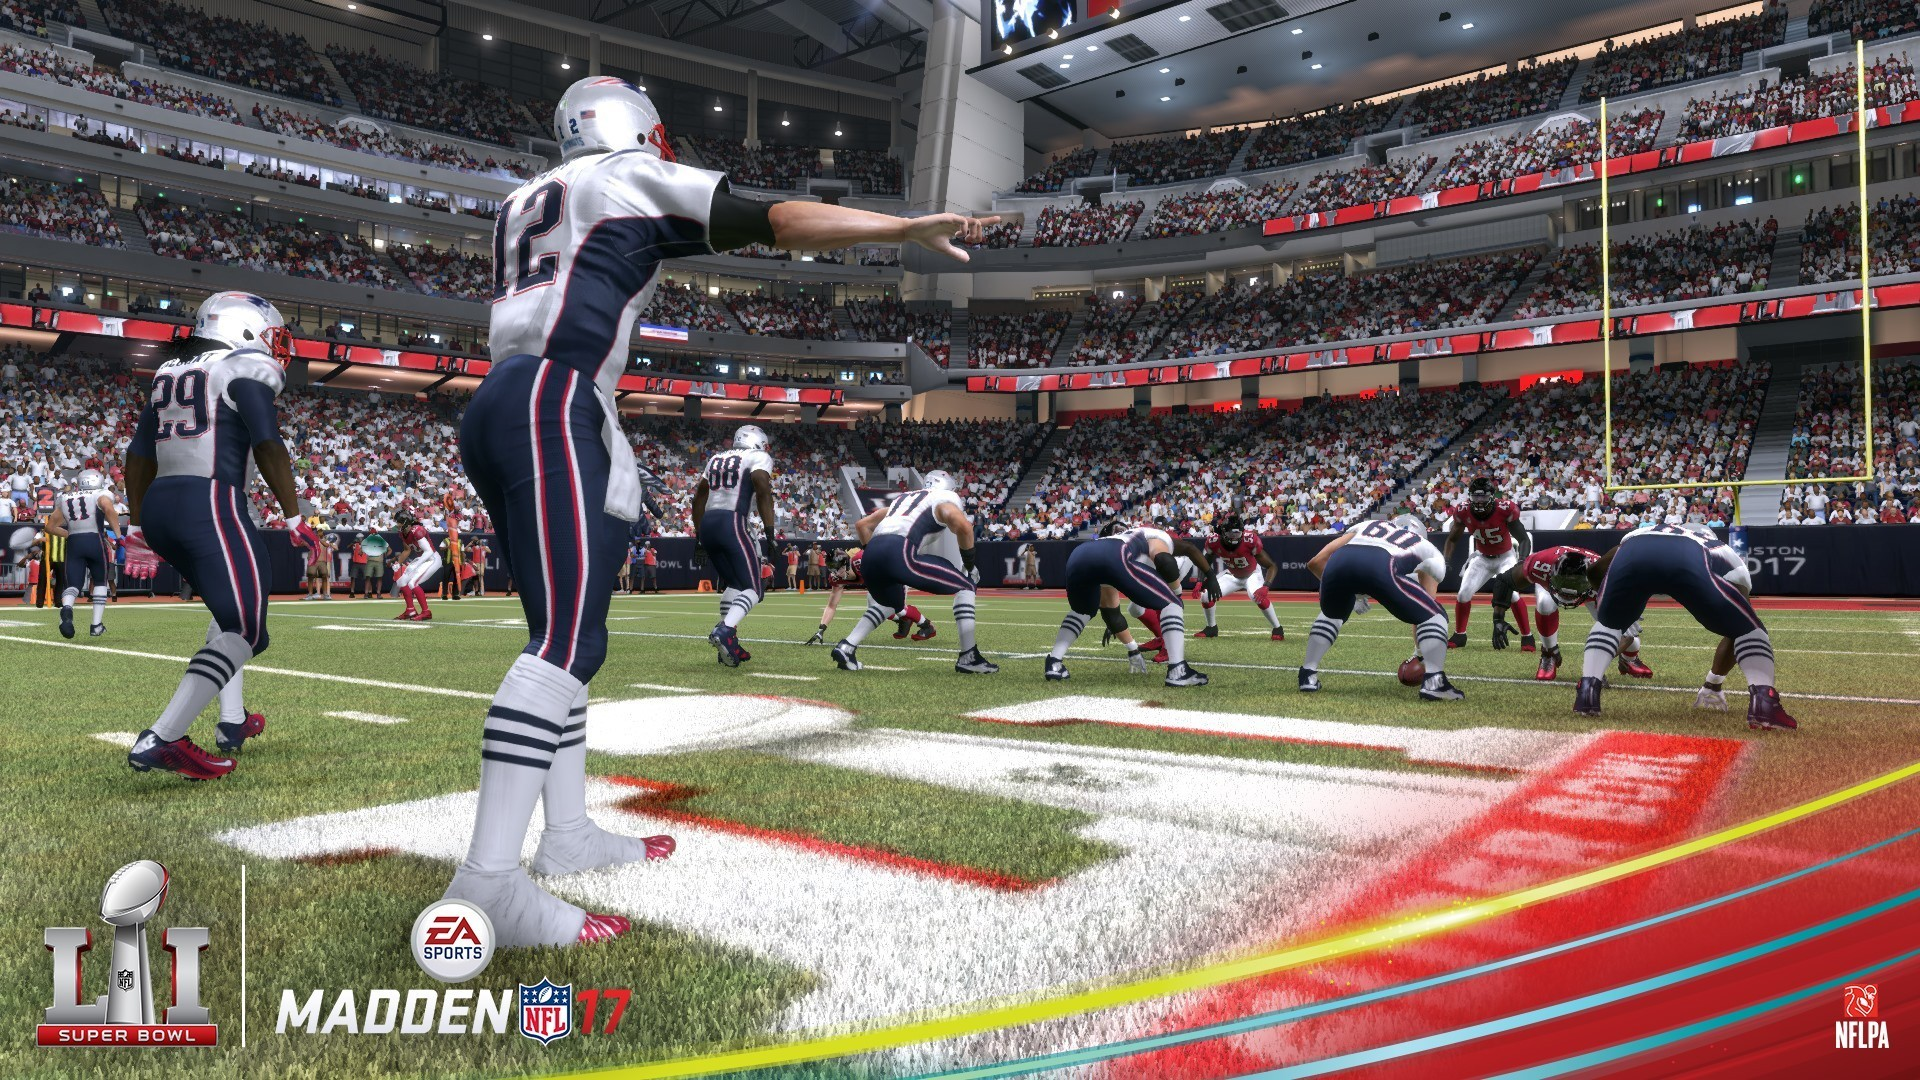 1920x1080 New England Patriots Wallpaper Large by HottSauce13 New England Patriots Wallpaper Large by HottSauce13